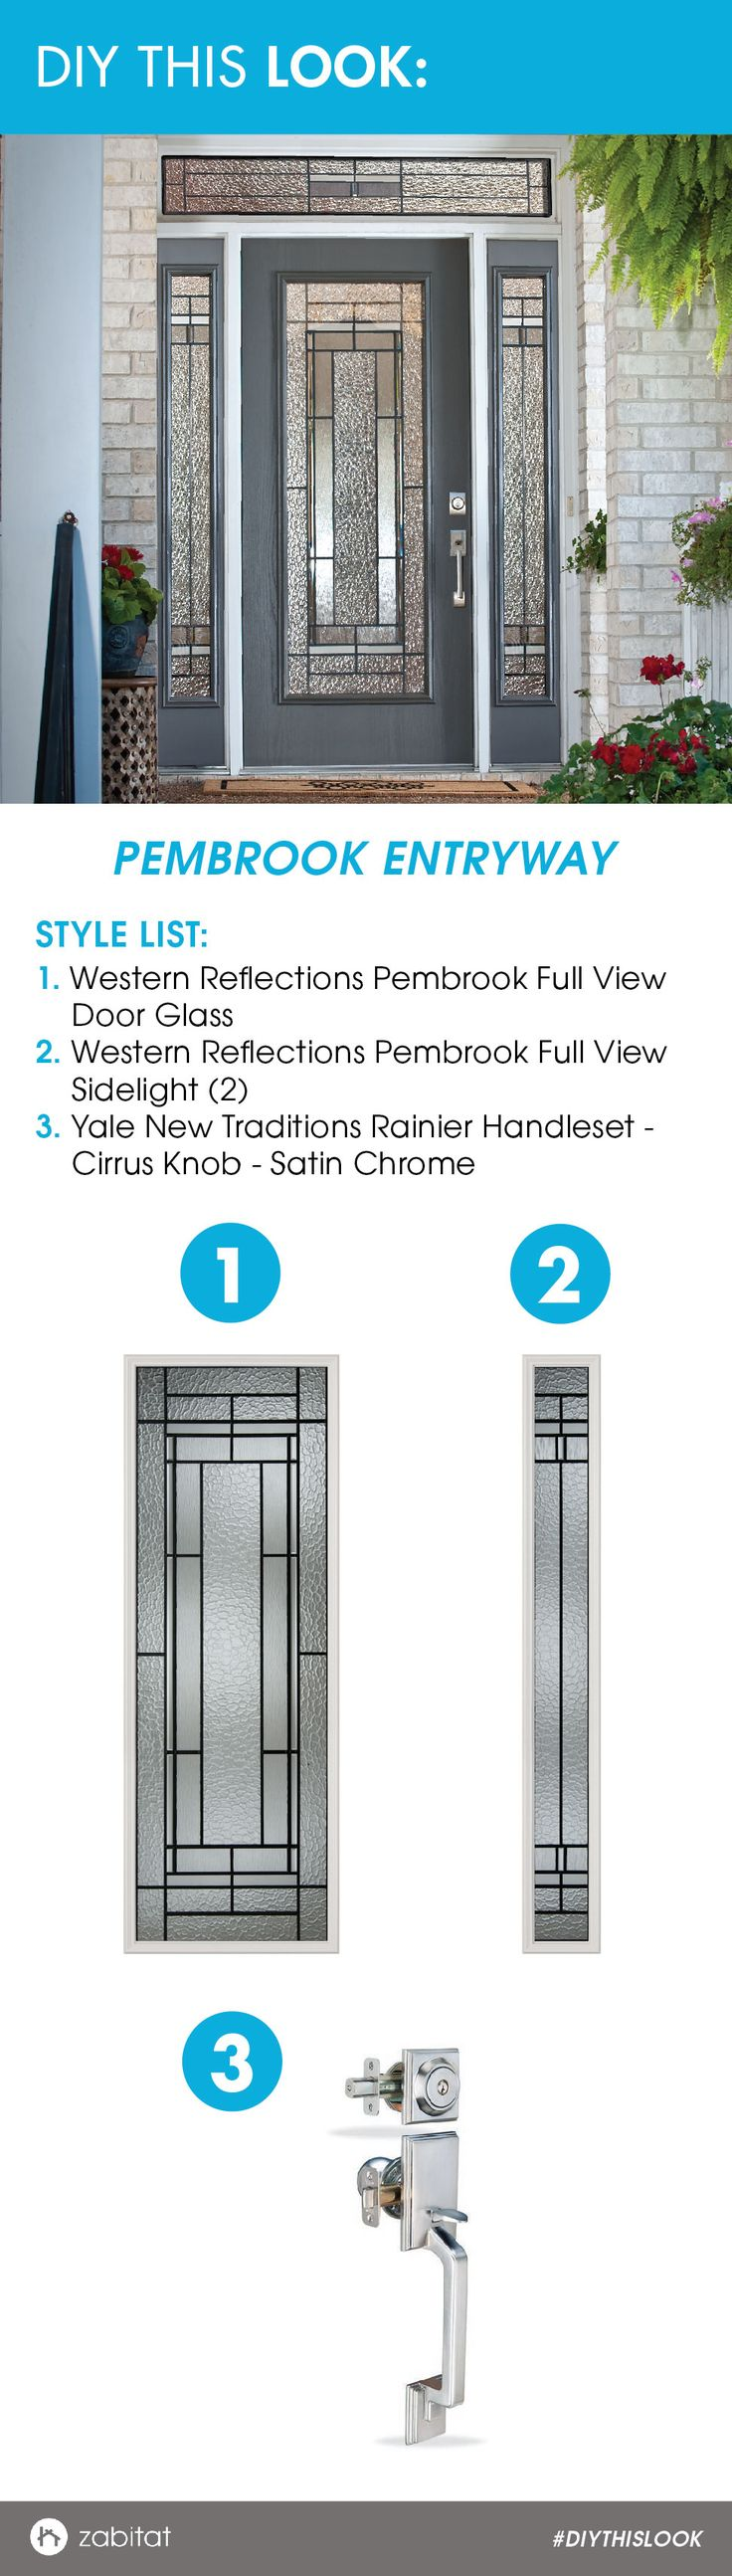 Best 25+ Door glass inserts ideas on Pinterest | Interior door ...